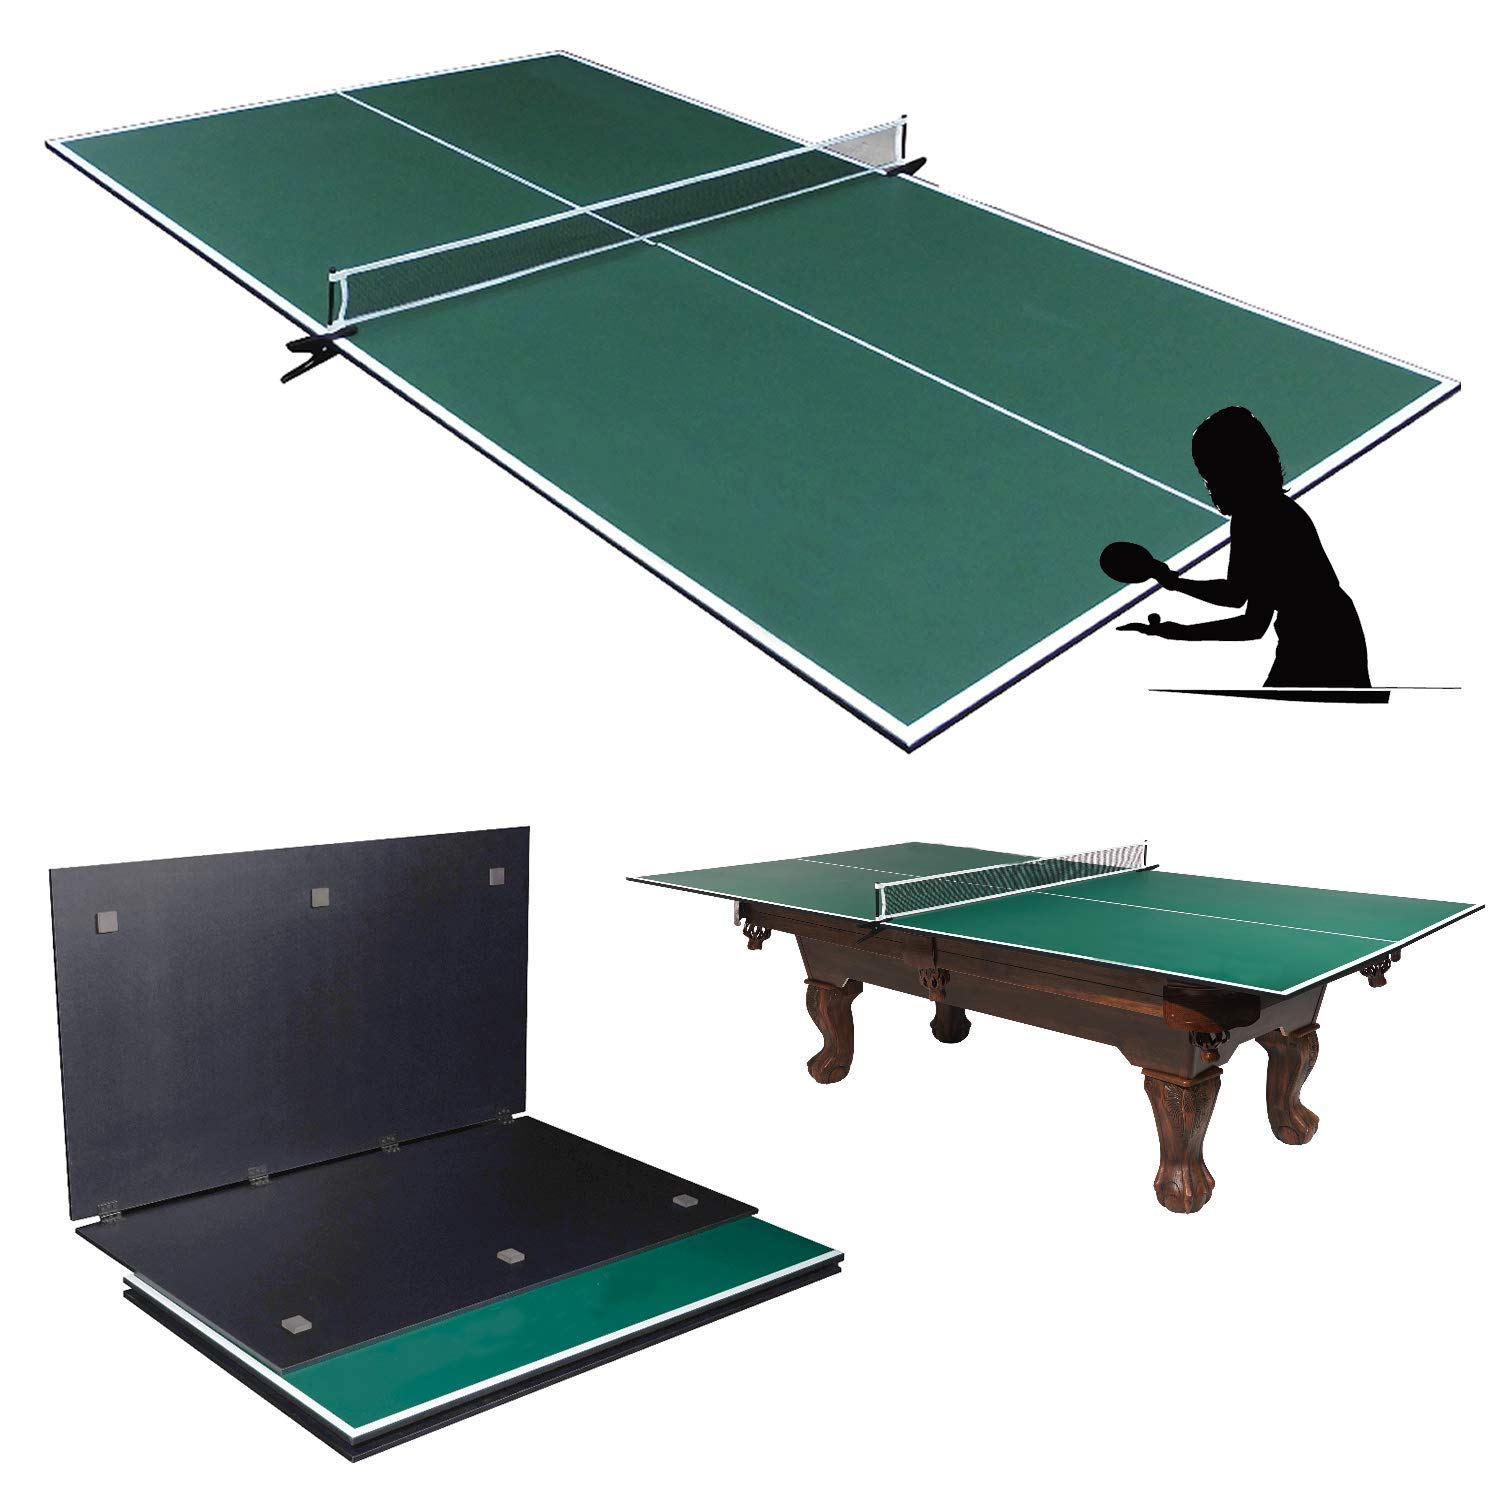 Picotech Portable Ping Pong Table Topper for Pool Table - Indoor Table Tennis Conversion Top Ping Pong Play 4 Pcs Foldable Clamp Net Post Scratch Resistant Space Save for Home Office Billiard Hockey by Picotech